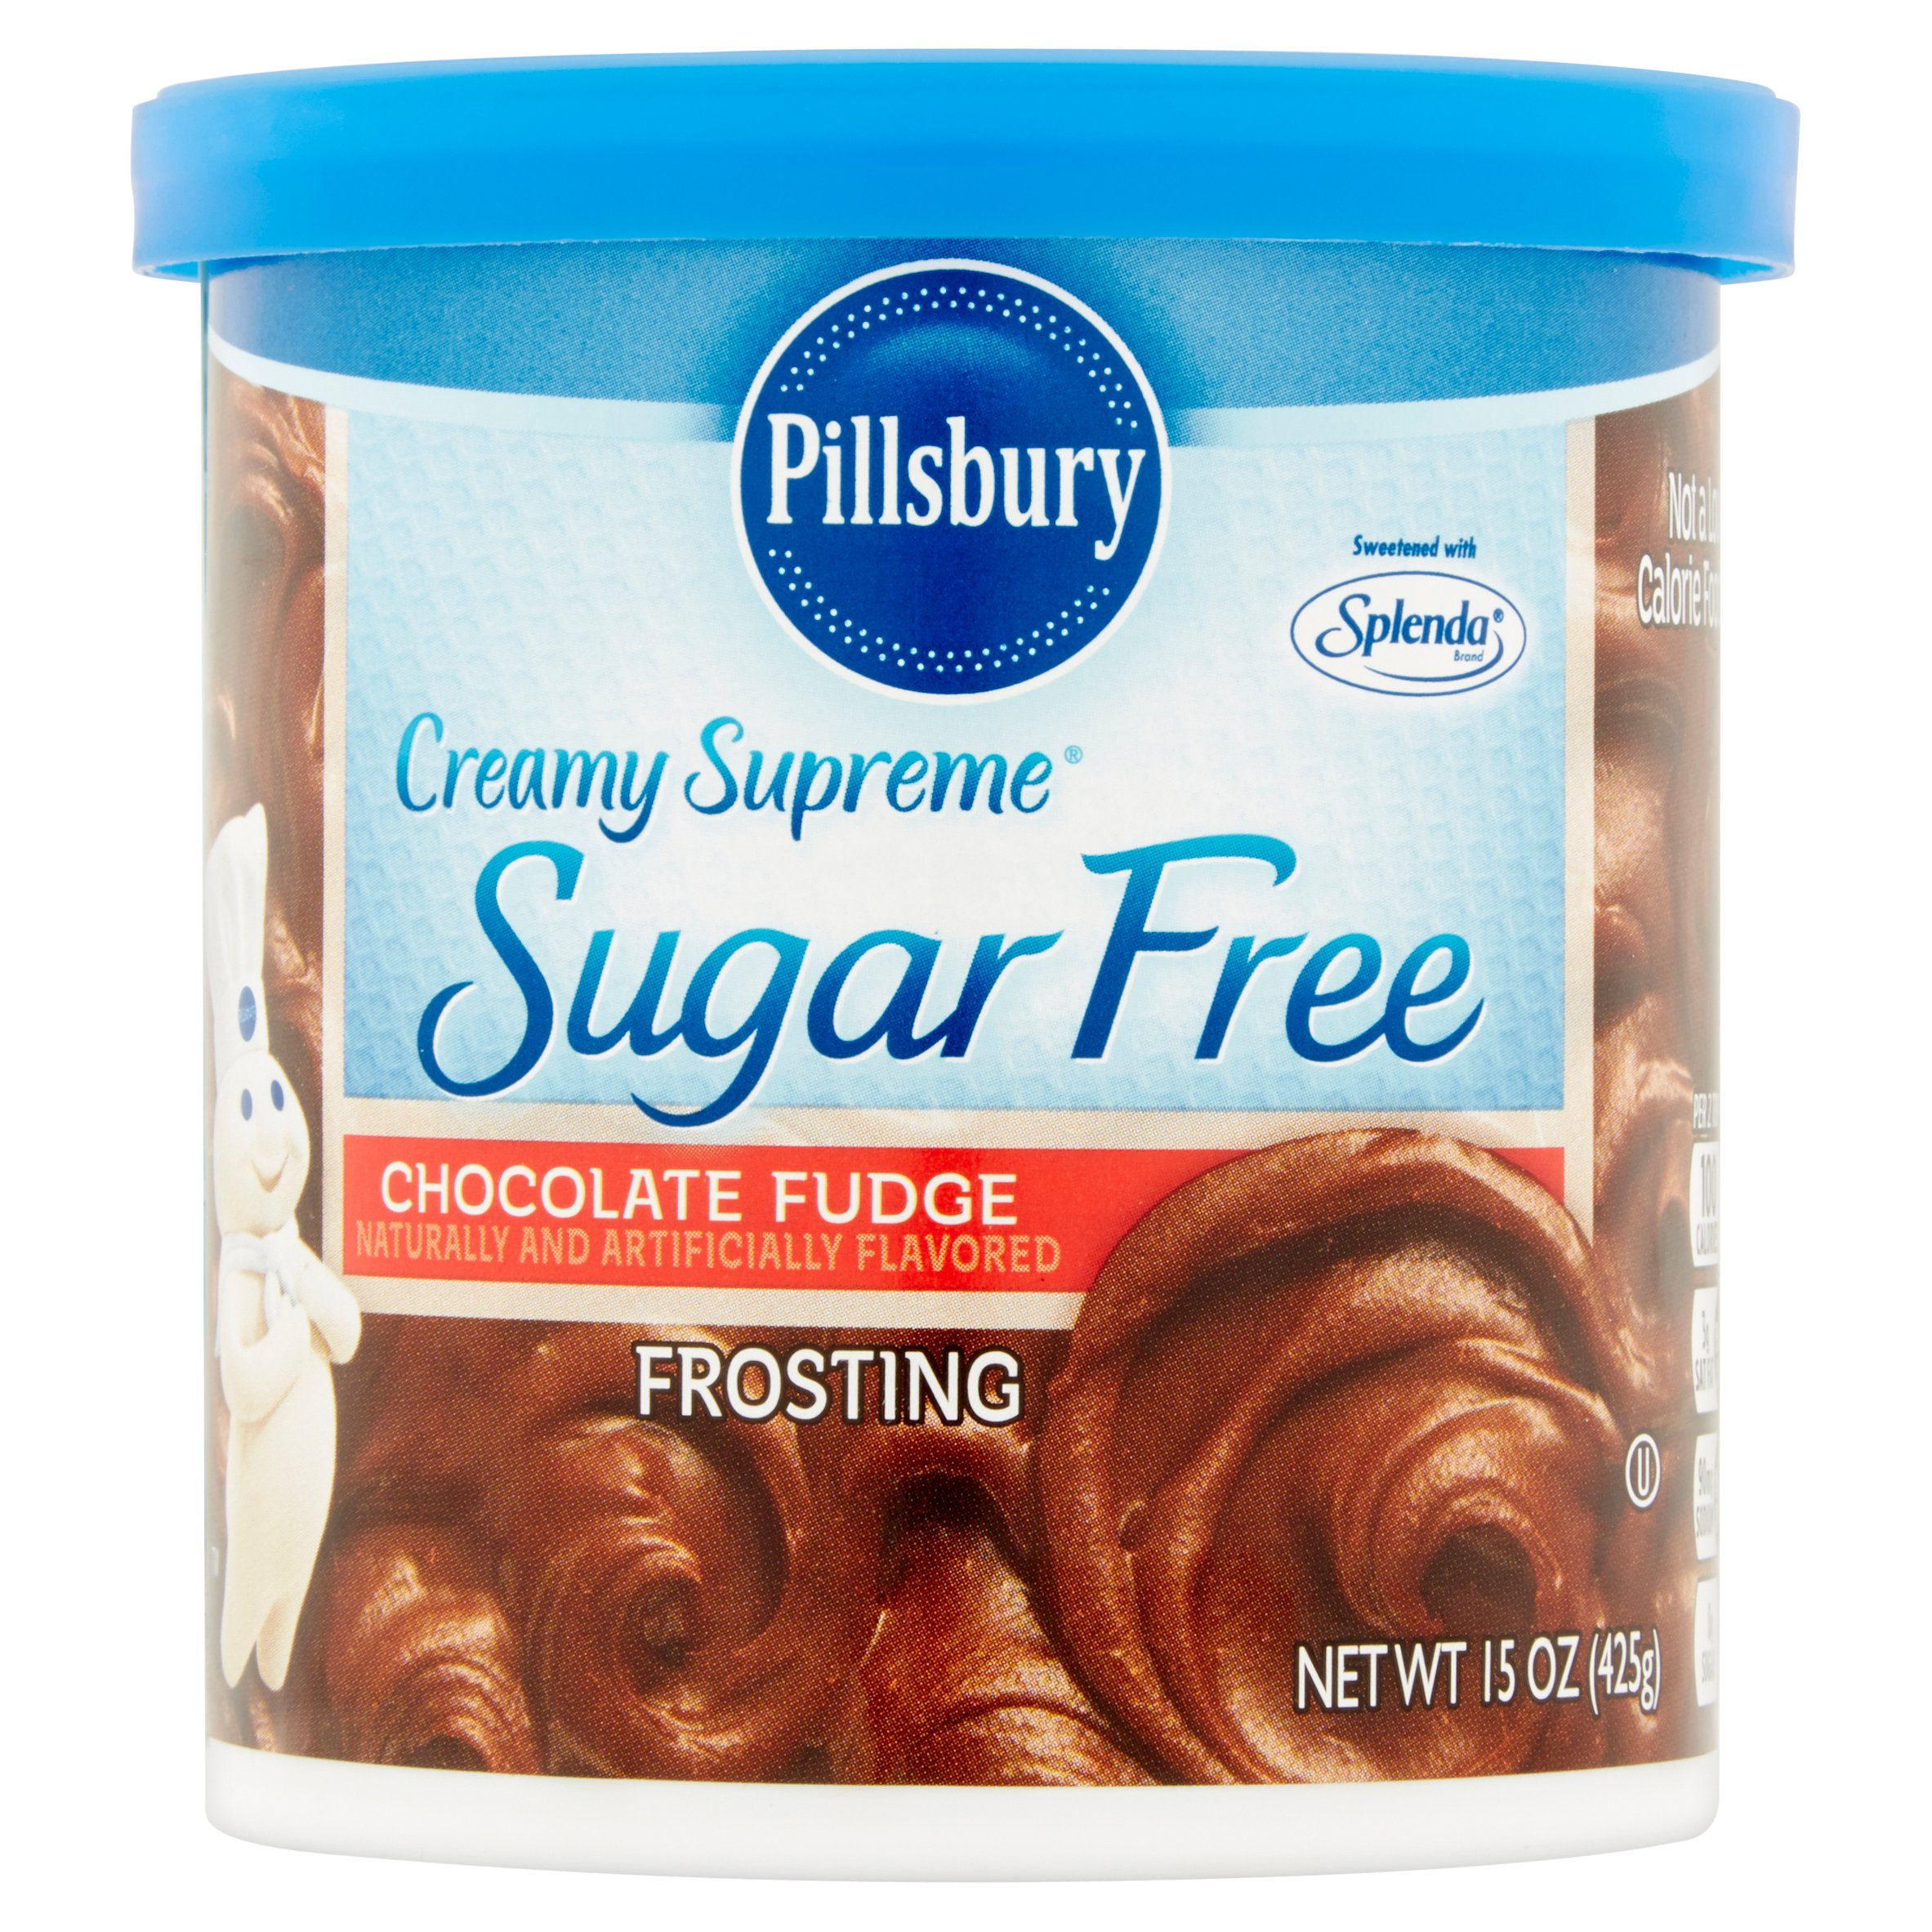 Pillsbury Creamy Supreme Chocolate Fudge Sugar Free Frosting, 15oz ...